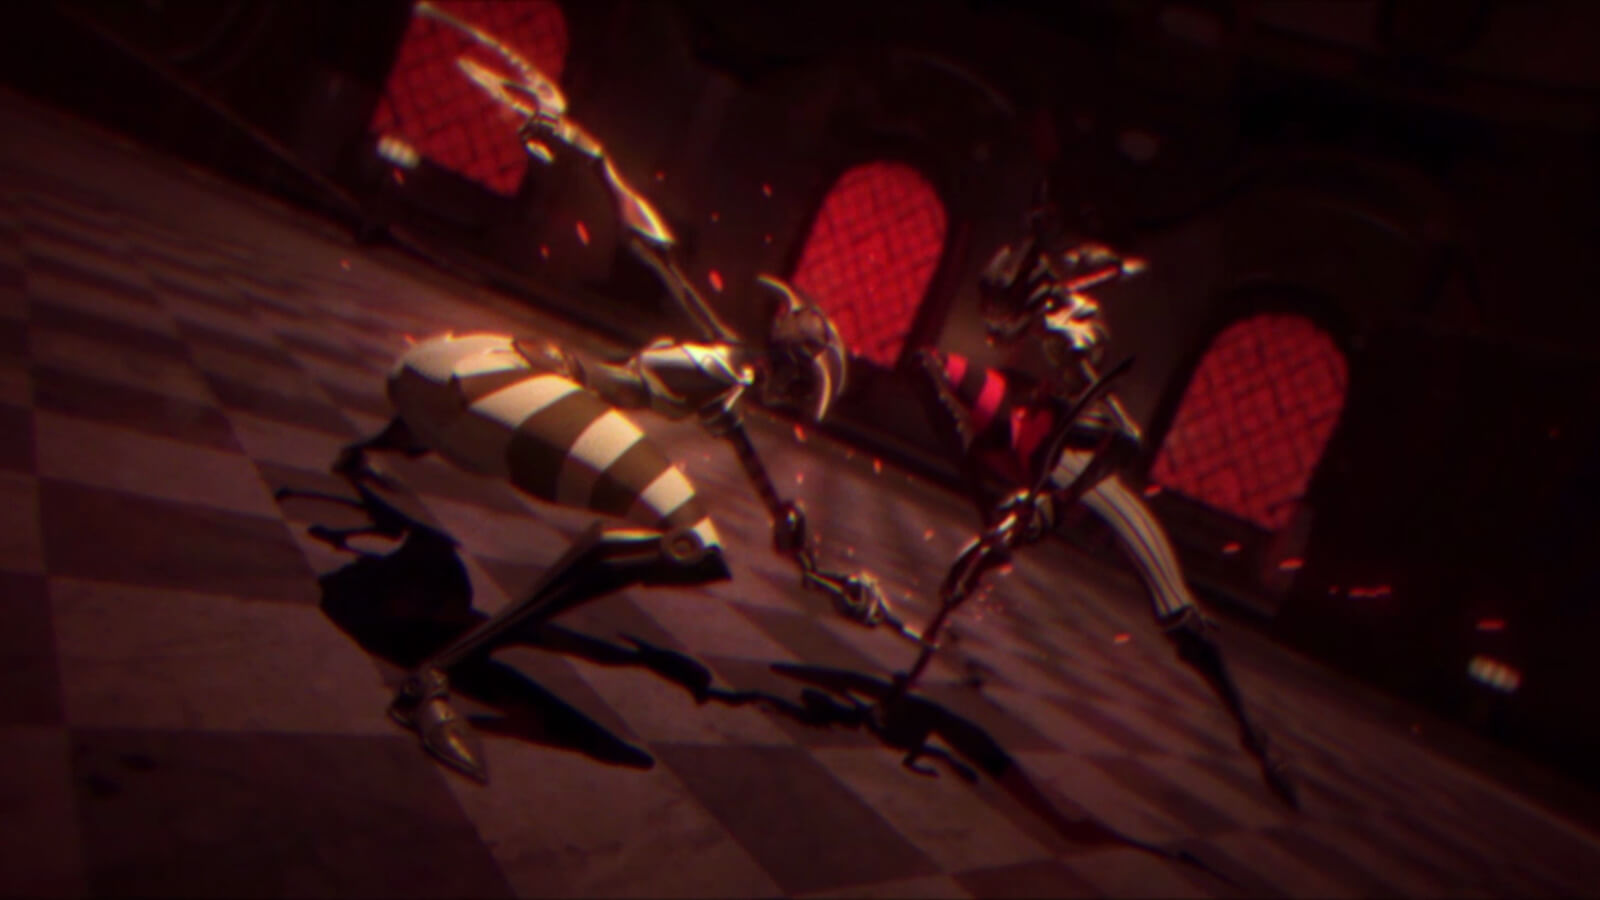 Two figures in lithe armor battle in a dimly lit room. One crouches swinging a melee weapon at the other's leg.